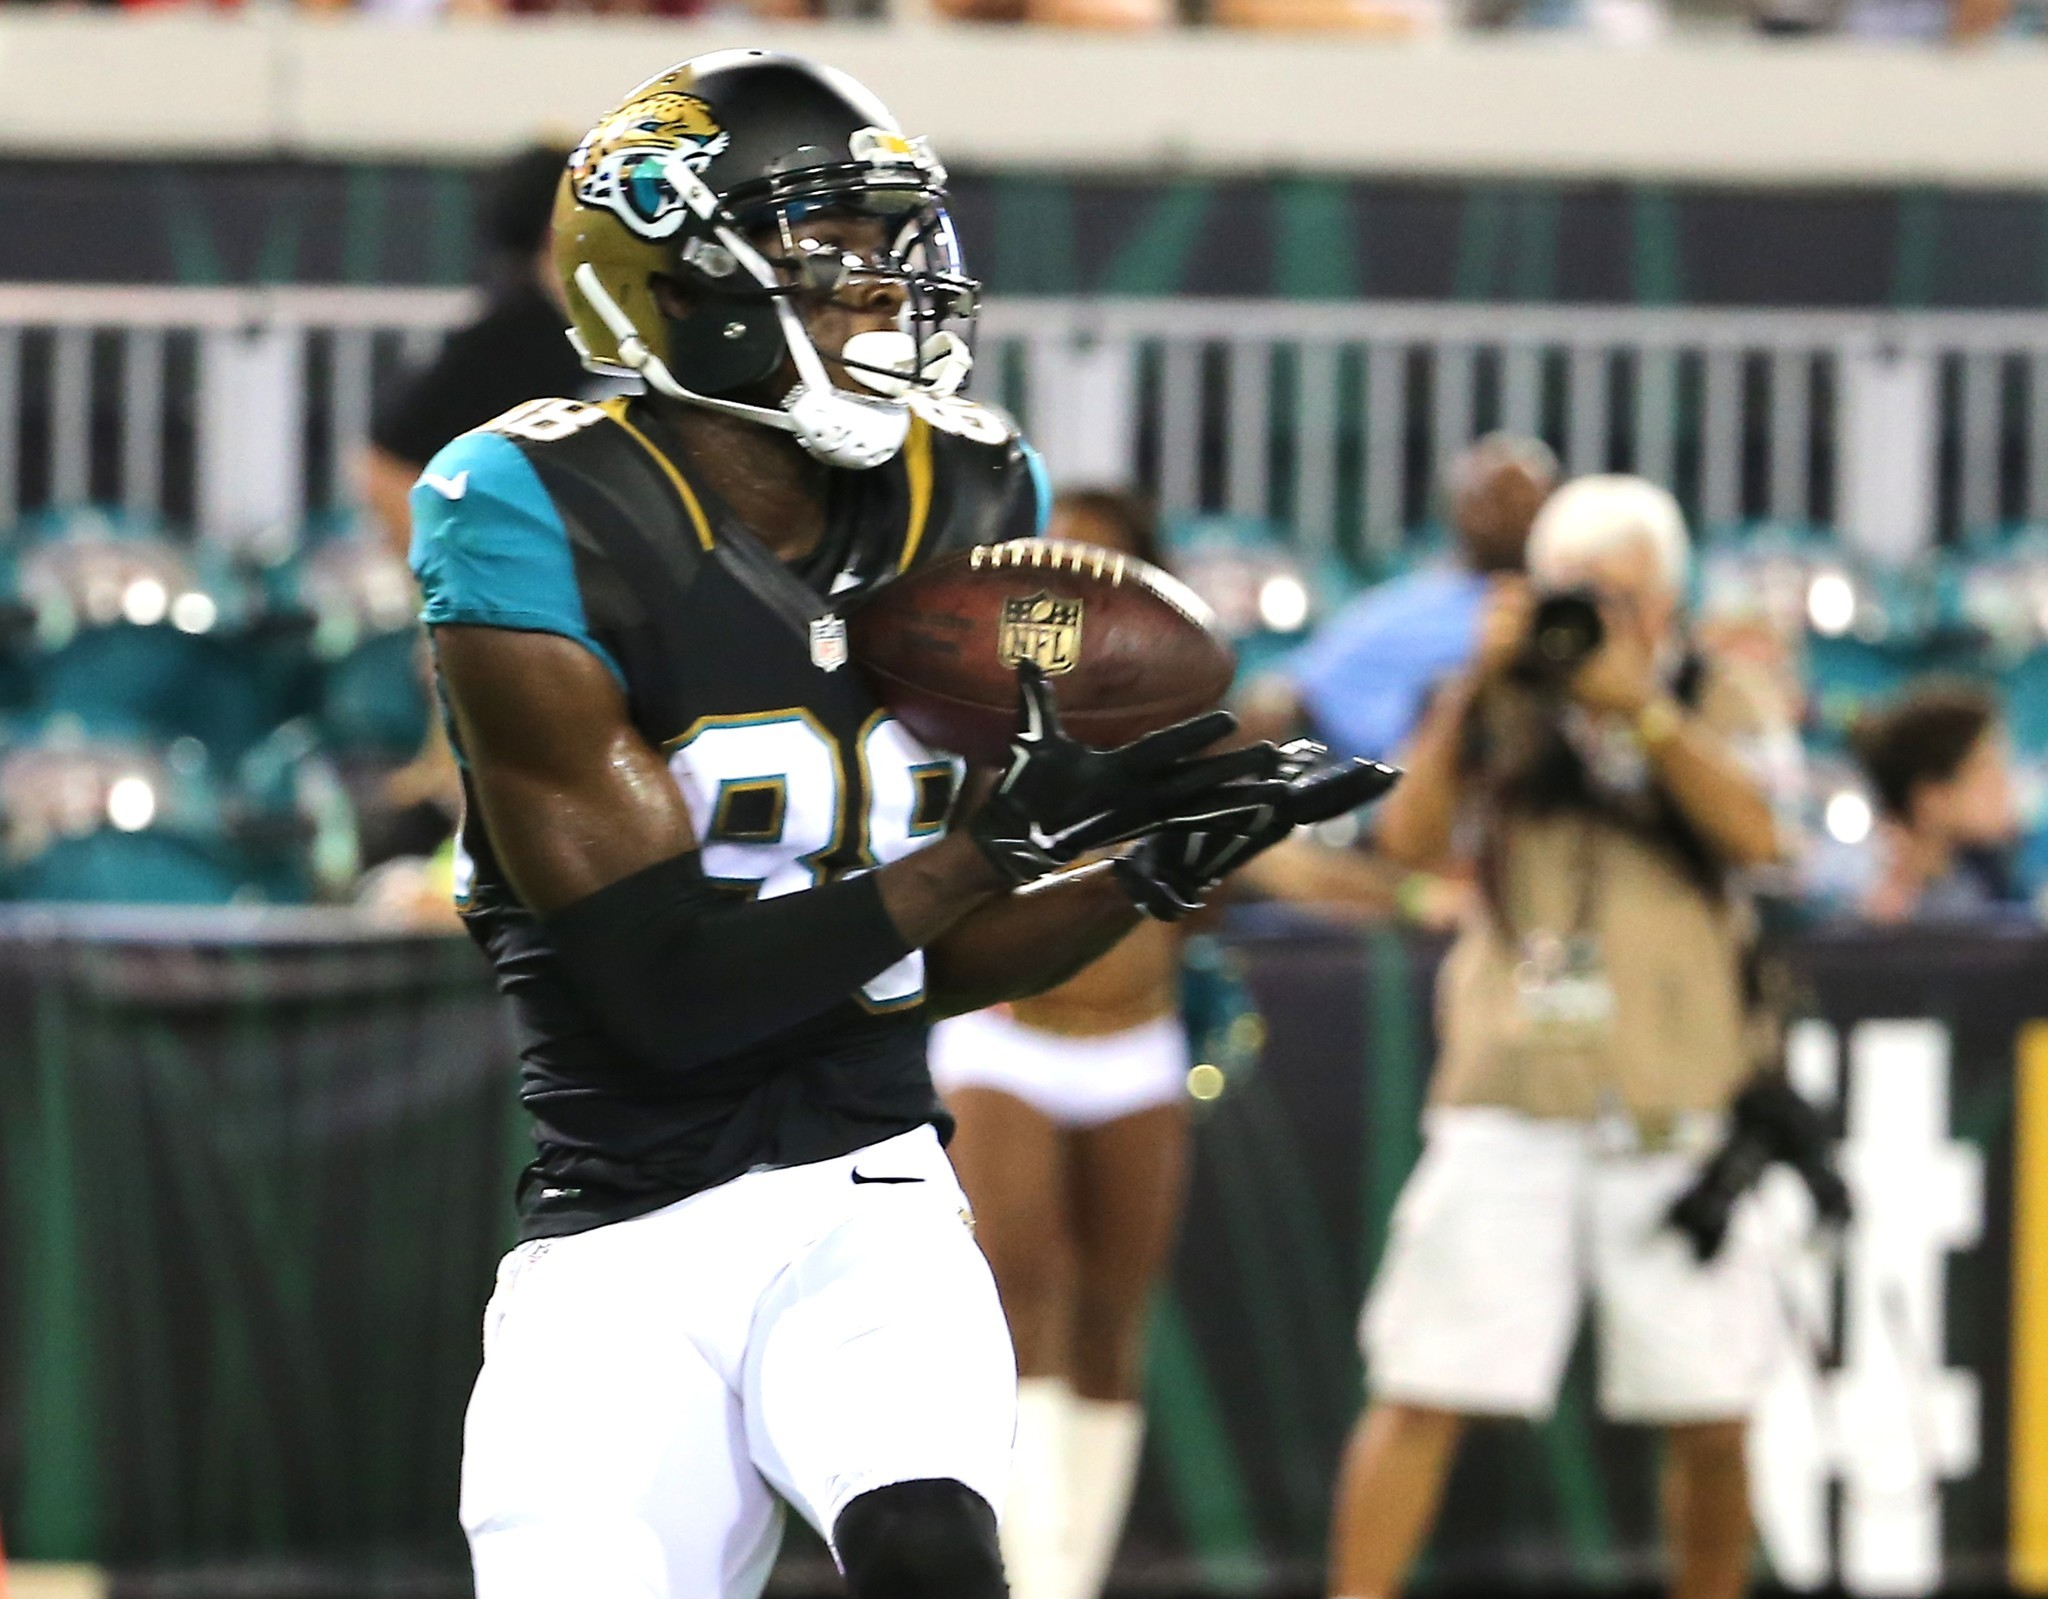 Bal-ravens-defense-concerned-about-containing-jacksonville-jaguars-duo-of-allen-robinson-allen-hurns-20160922